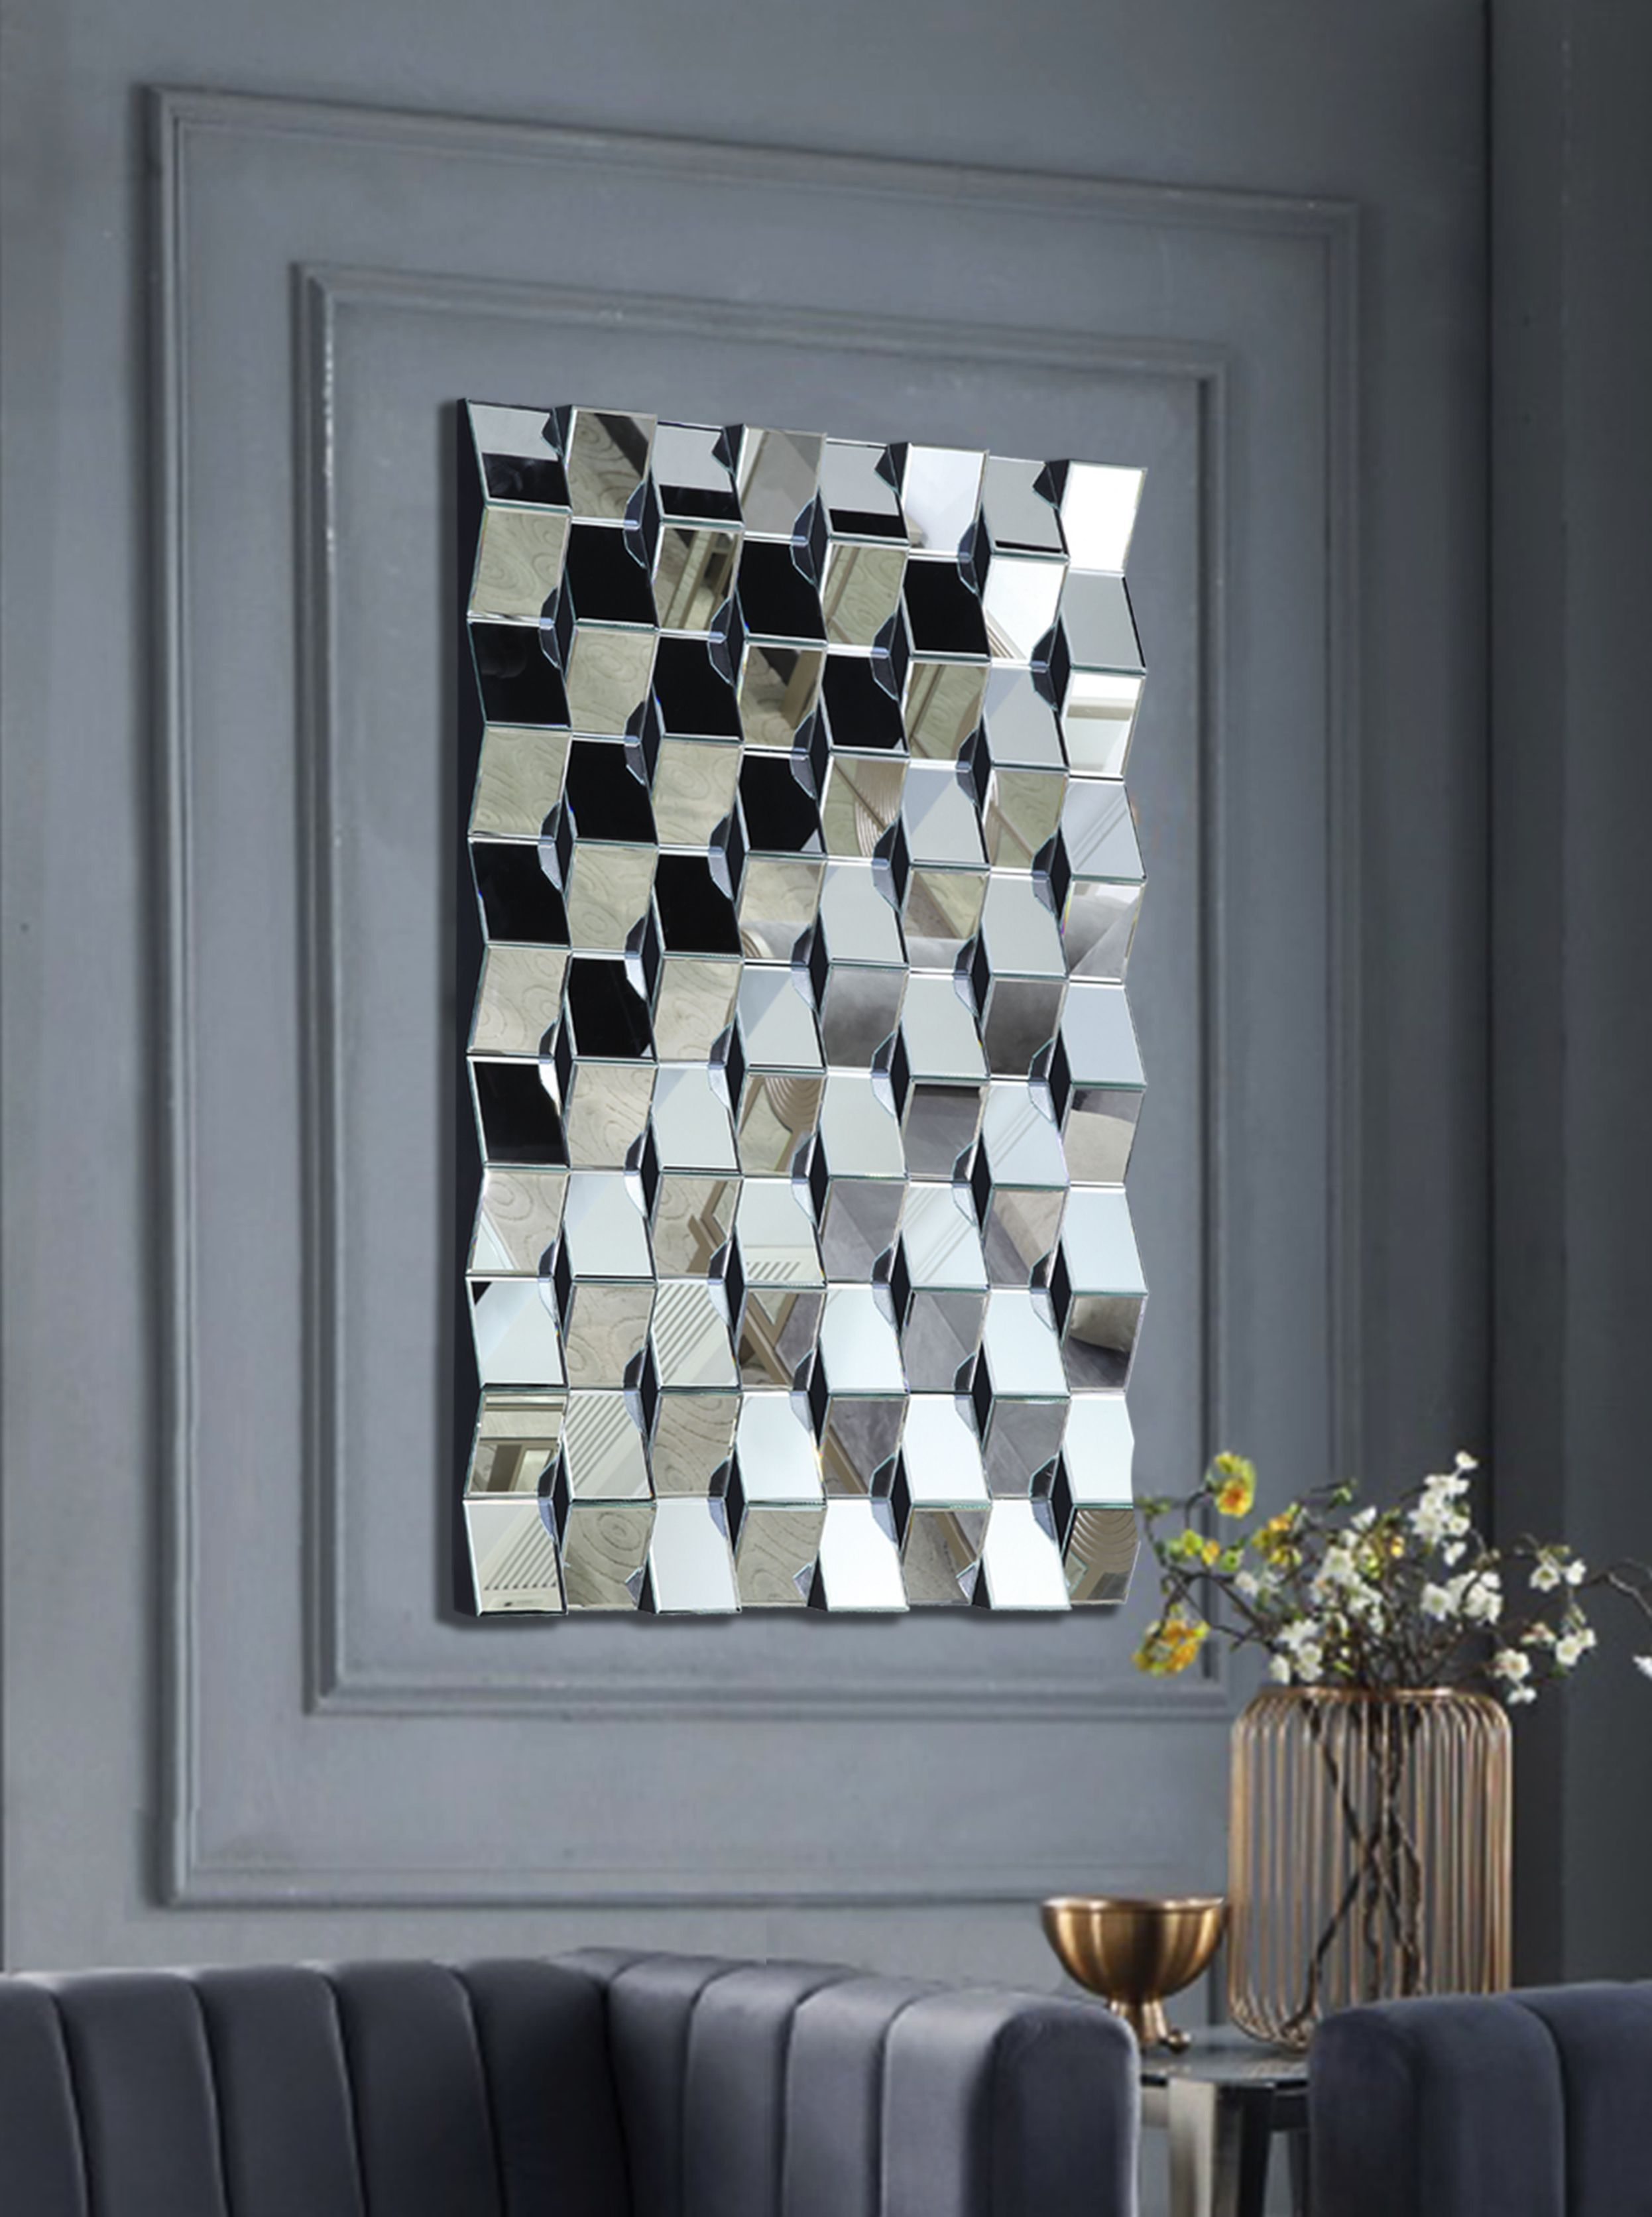 Ziggy Mirror 418 Meridian Furniture Mirrors In 2021 Mirror Design Wall Mirror Wall Art Contemporary Wall Mirrors